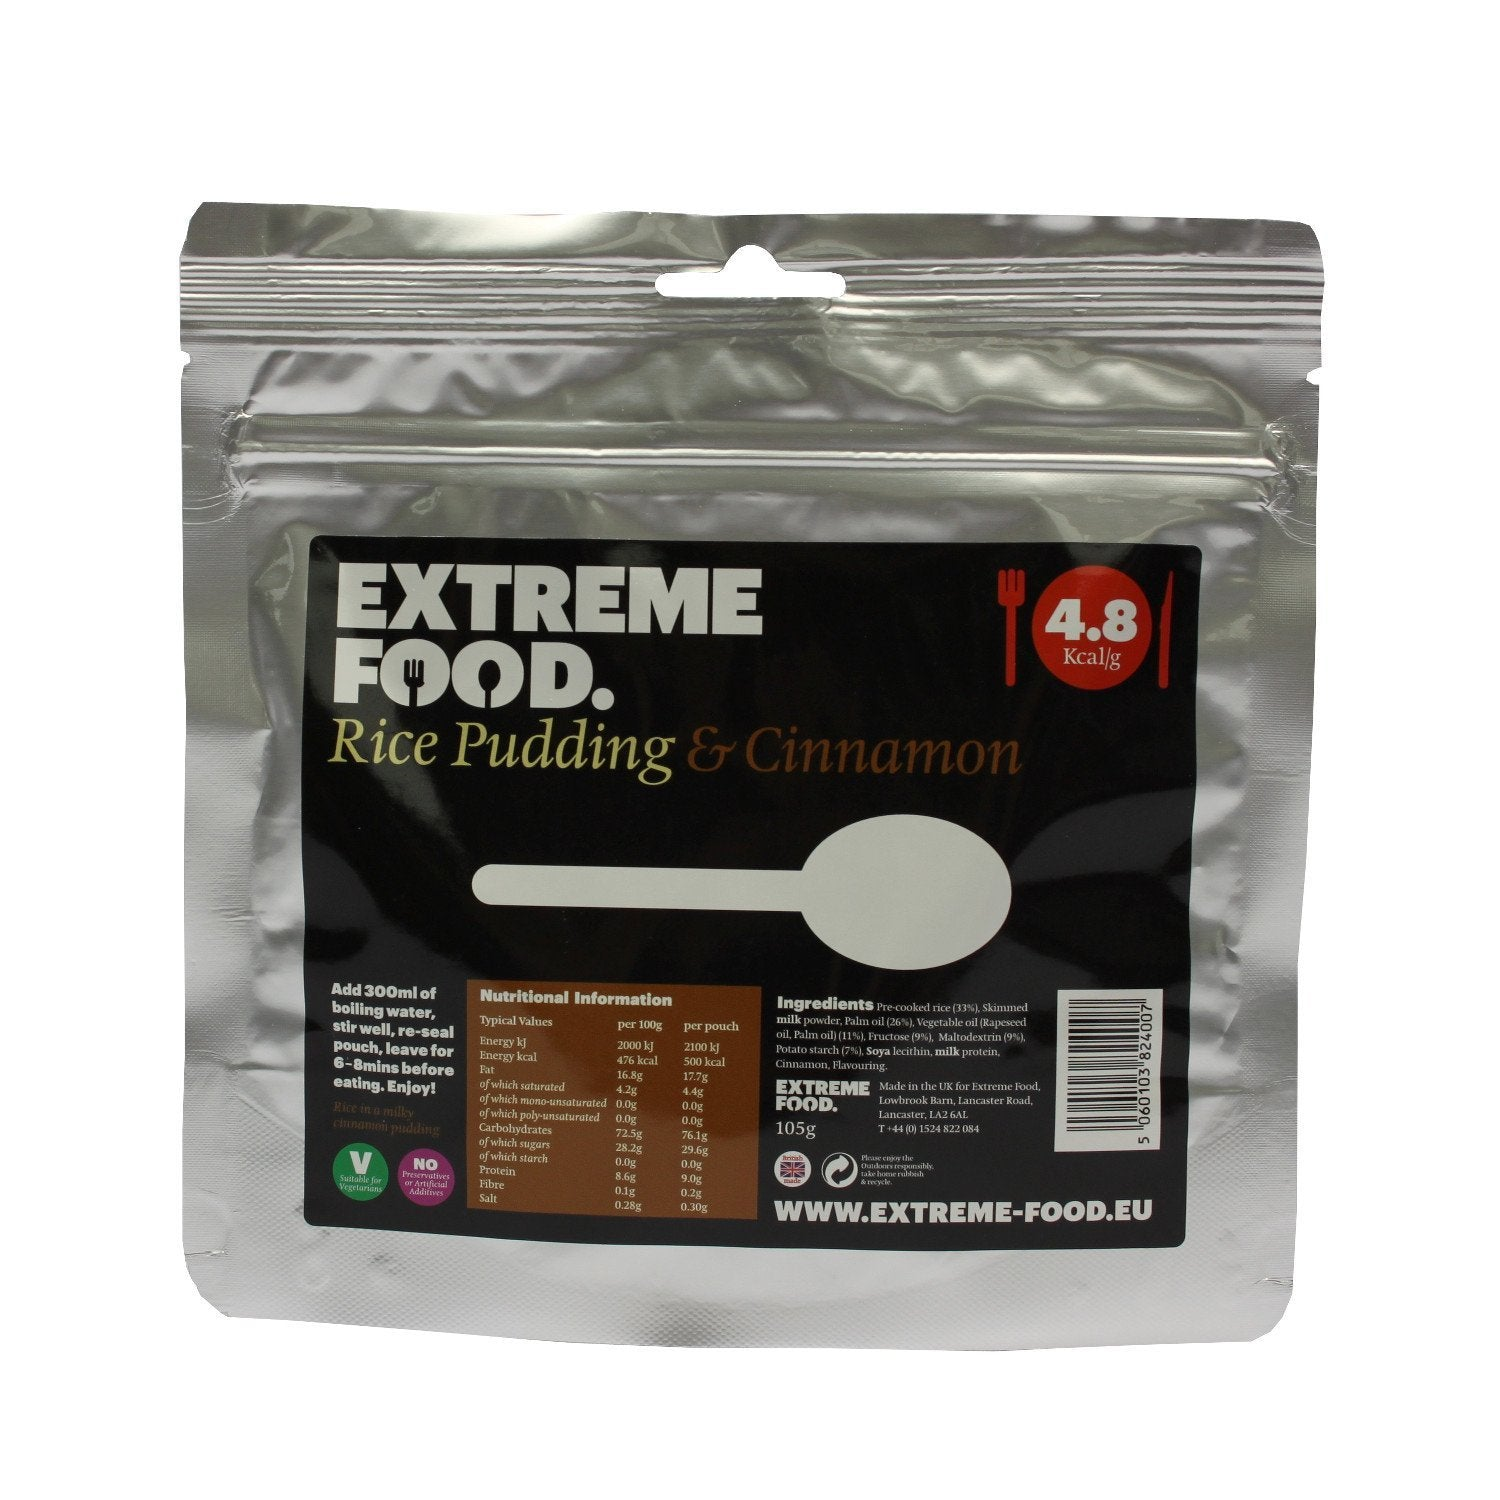 Extreme Food Rice Pudding & Cinnamon, dried expedition food pack